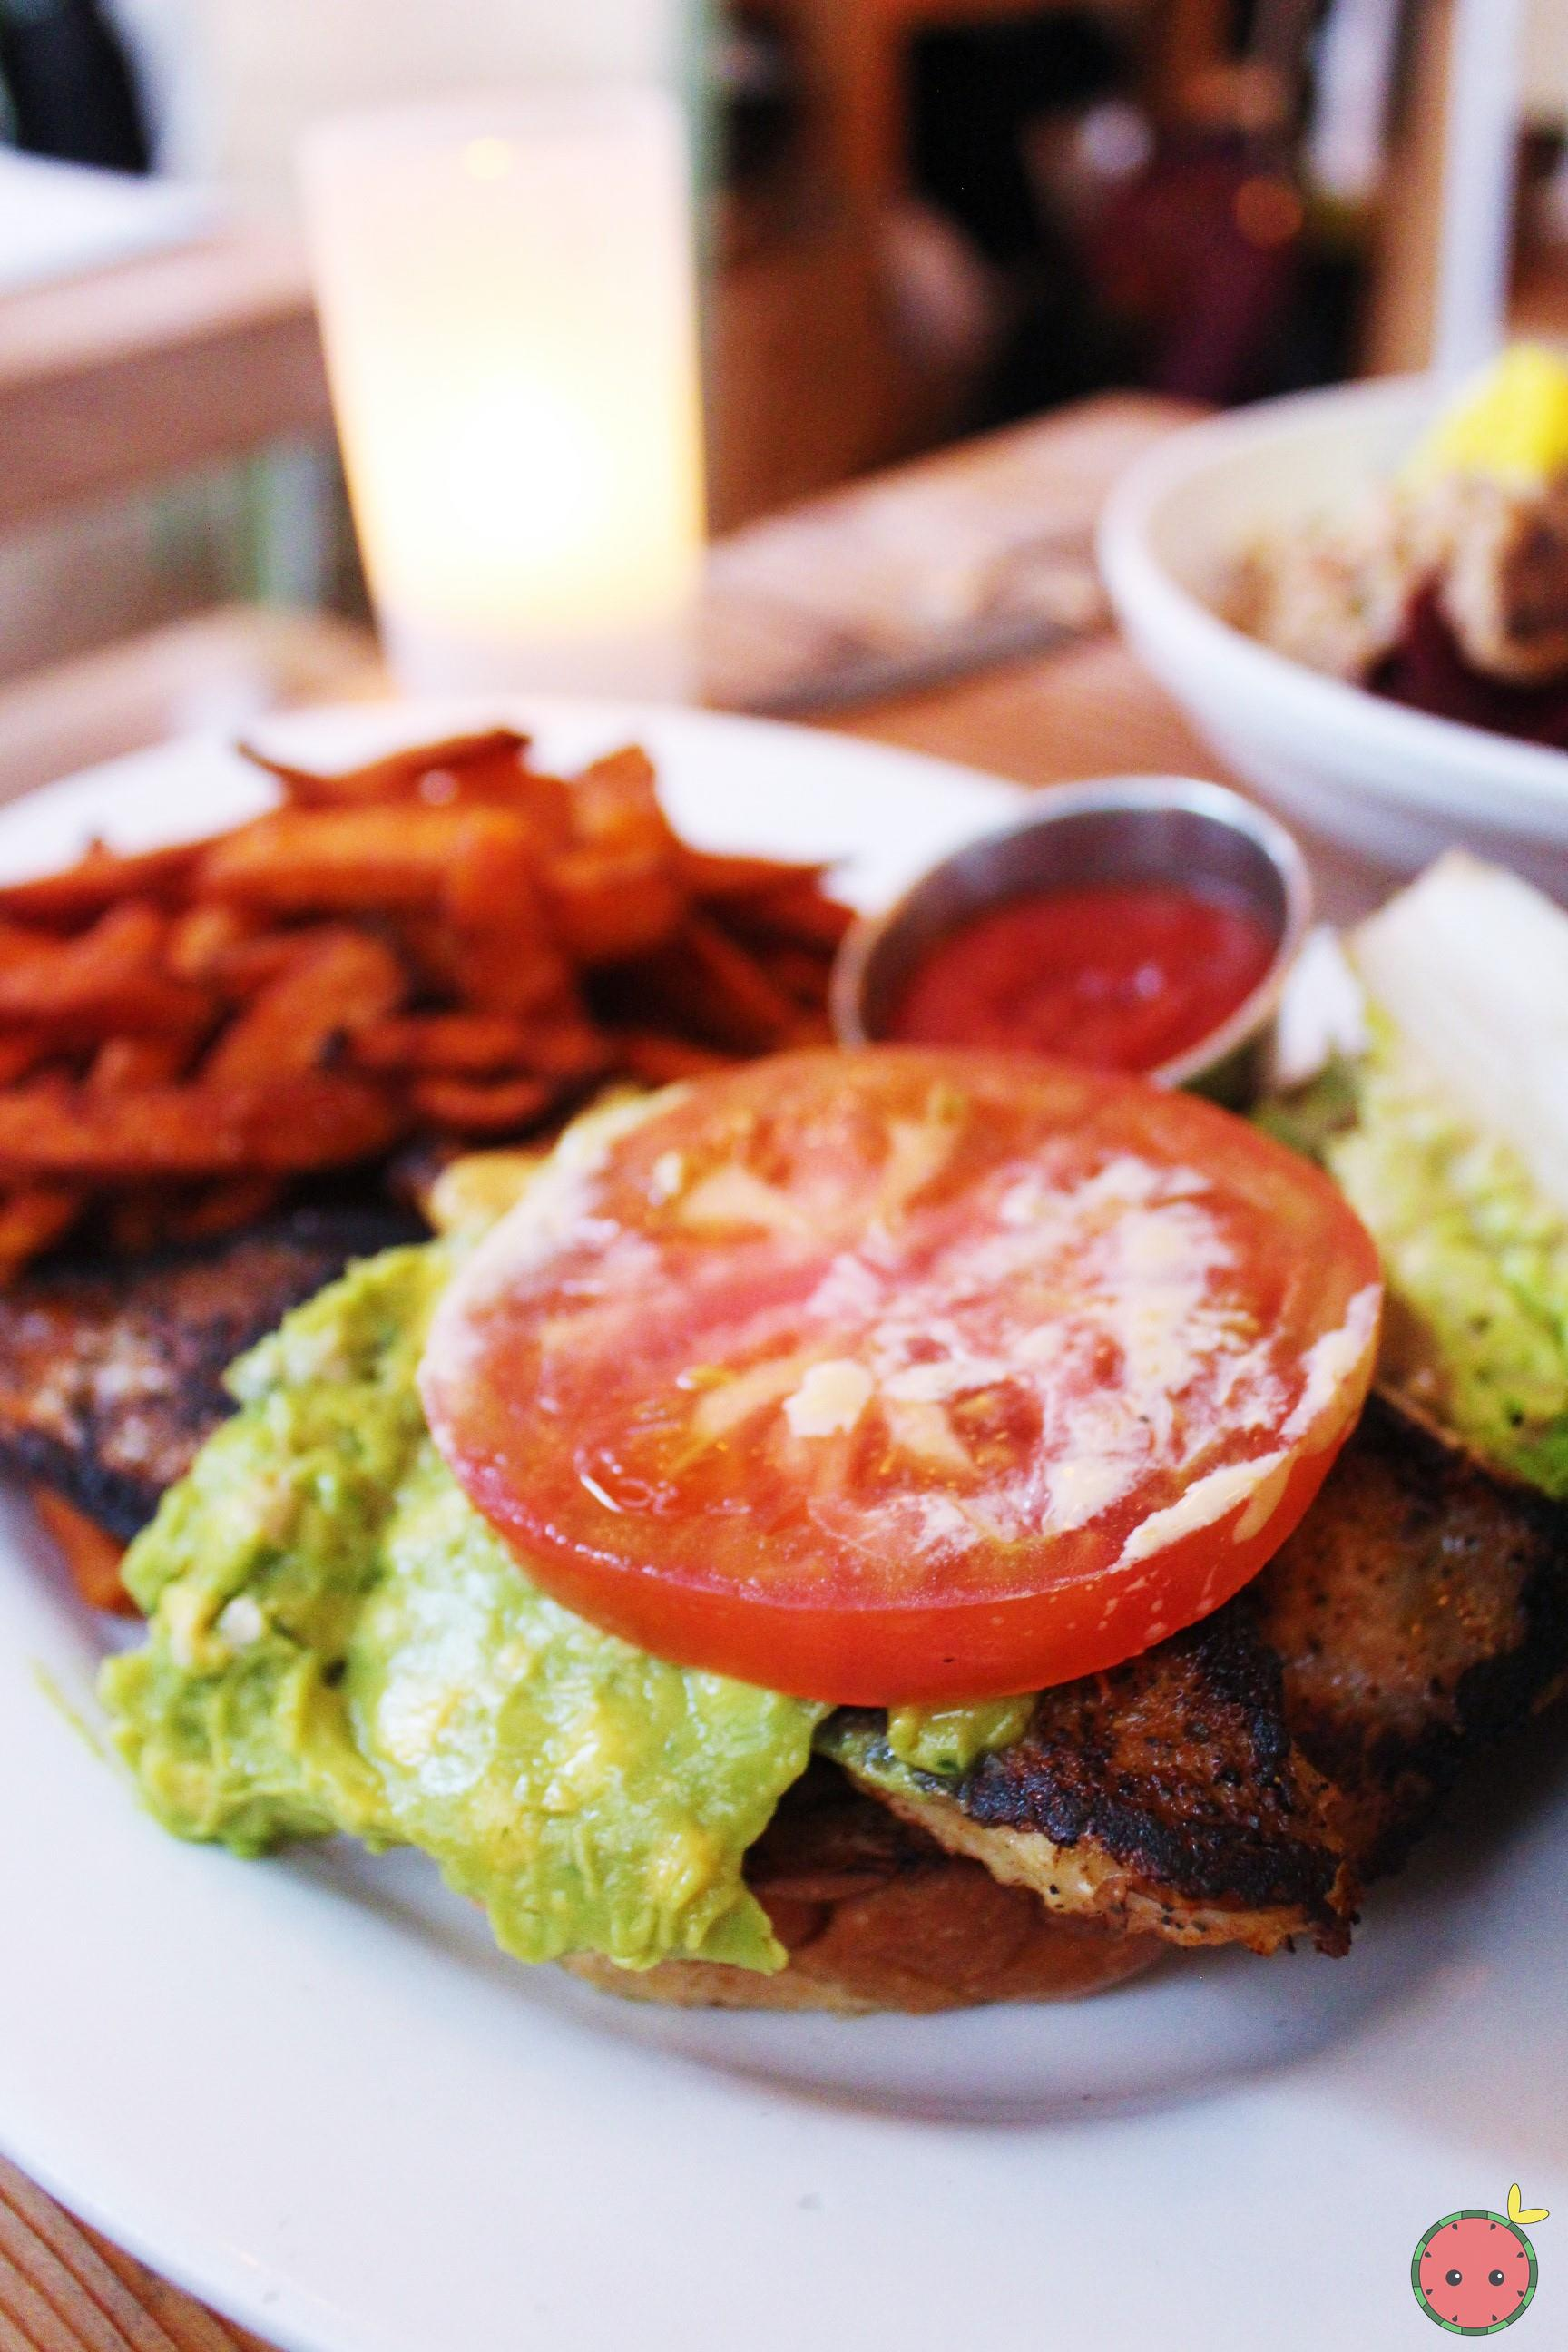 Blackened catfish sandwich with avocado, citrus aioli, lettuce, tomato, and sweet potato fries